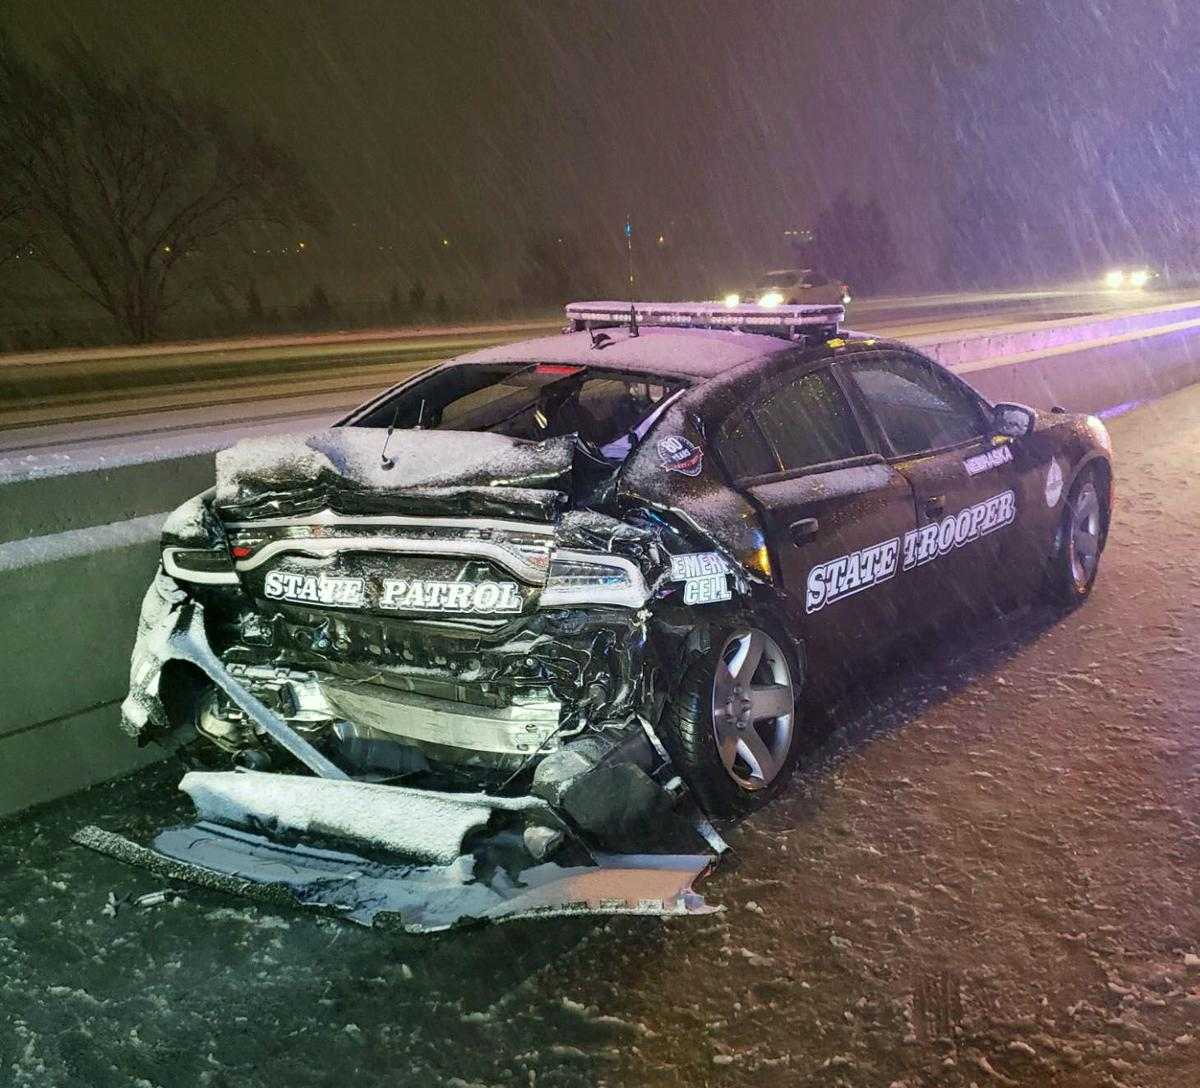 Patrol vehicle totaled